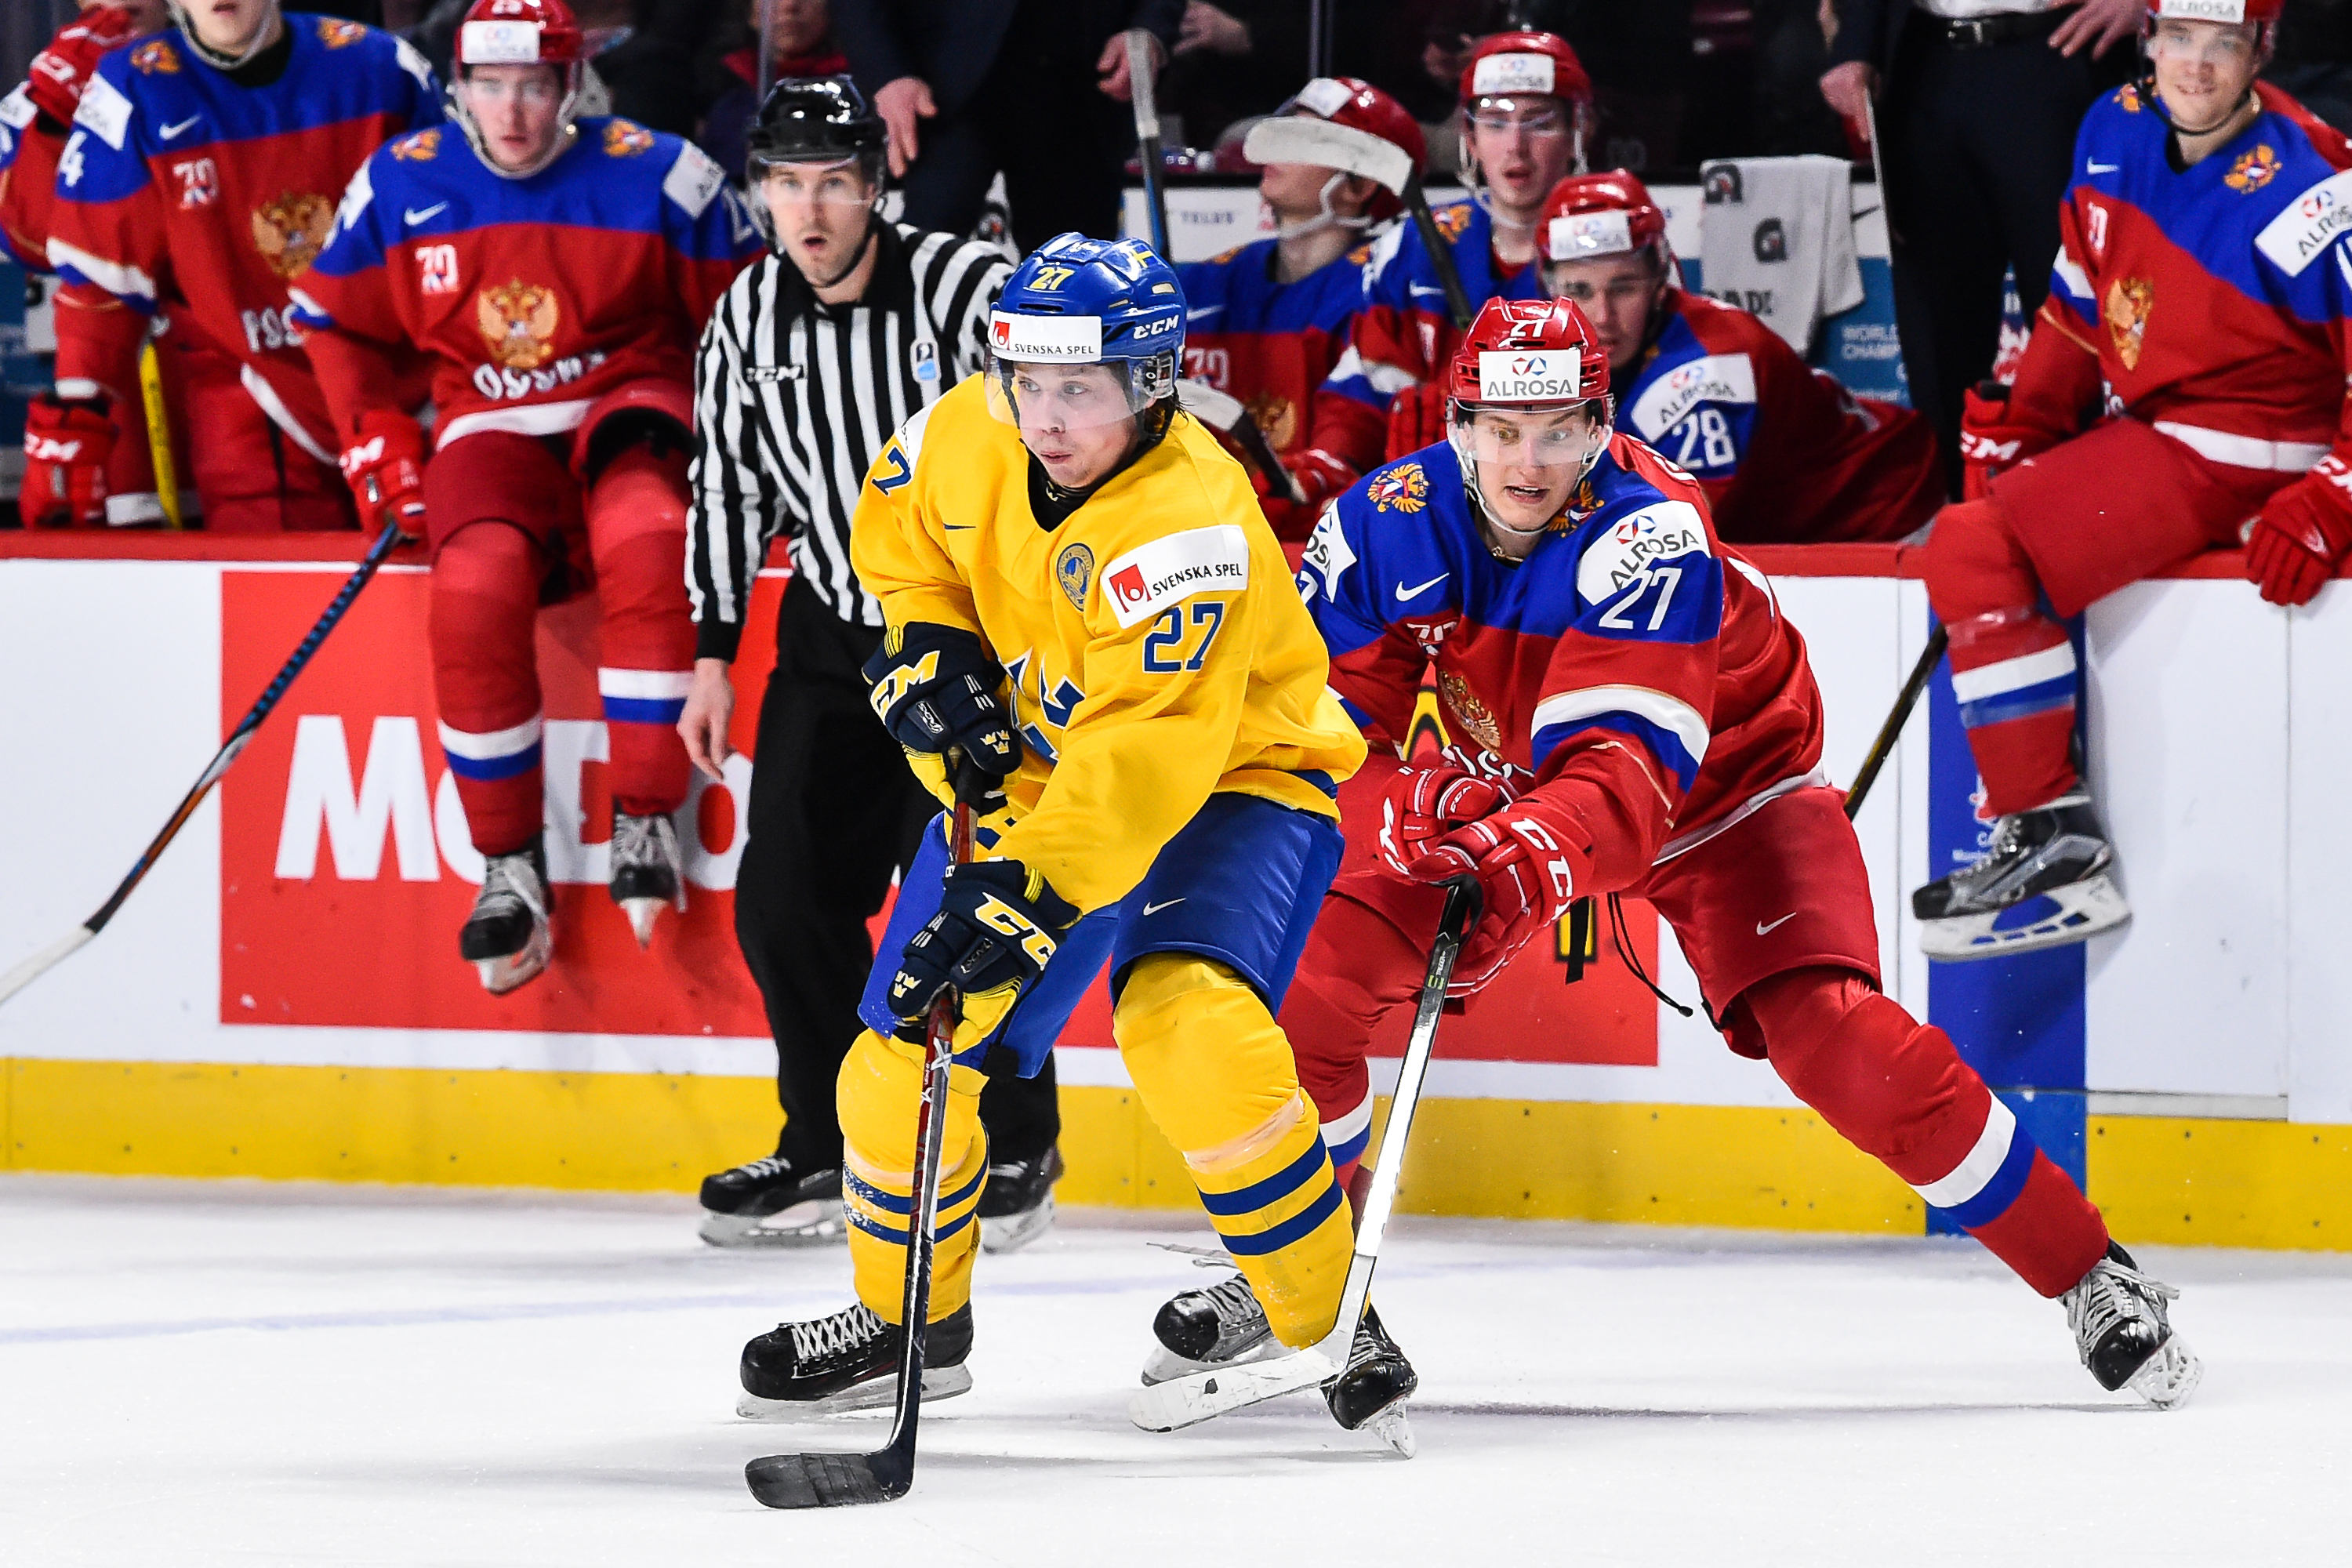 MONTREAL, QC - JANUARY 05: Jonathan Dahlen #27 of Team Sweden skates against Denis Guryanov #27 of Team Russia during the 2017 IIHF World Junior Championship bronze medal game at the Bell Centre on January 5, 2017 in Montreal, Quebec, Canada. Team Russia